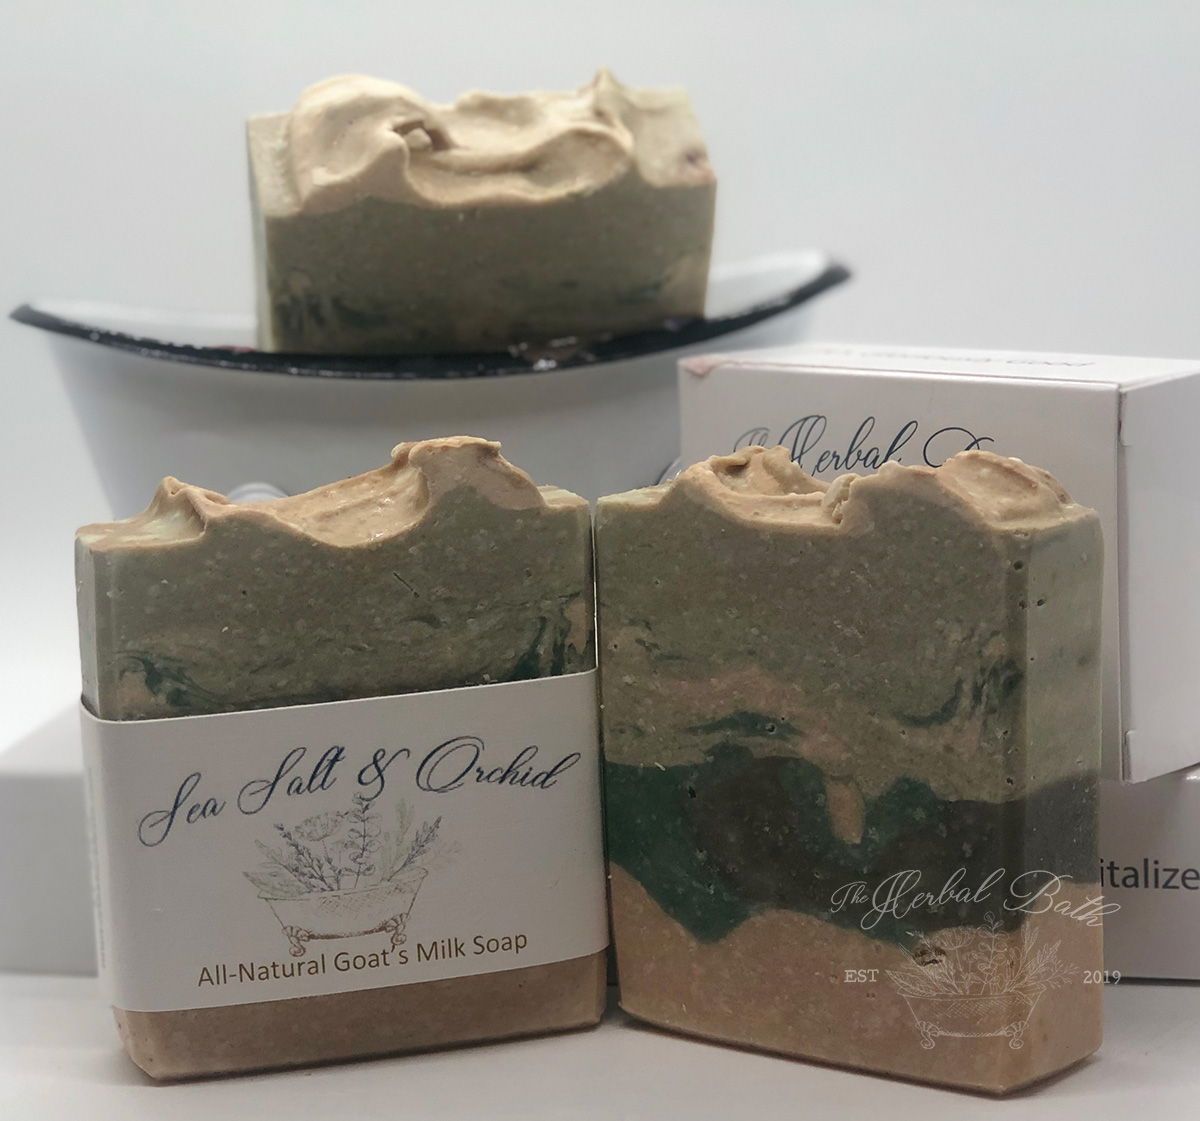 Sea Salt and Orchid Soap